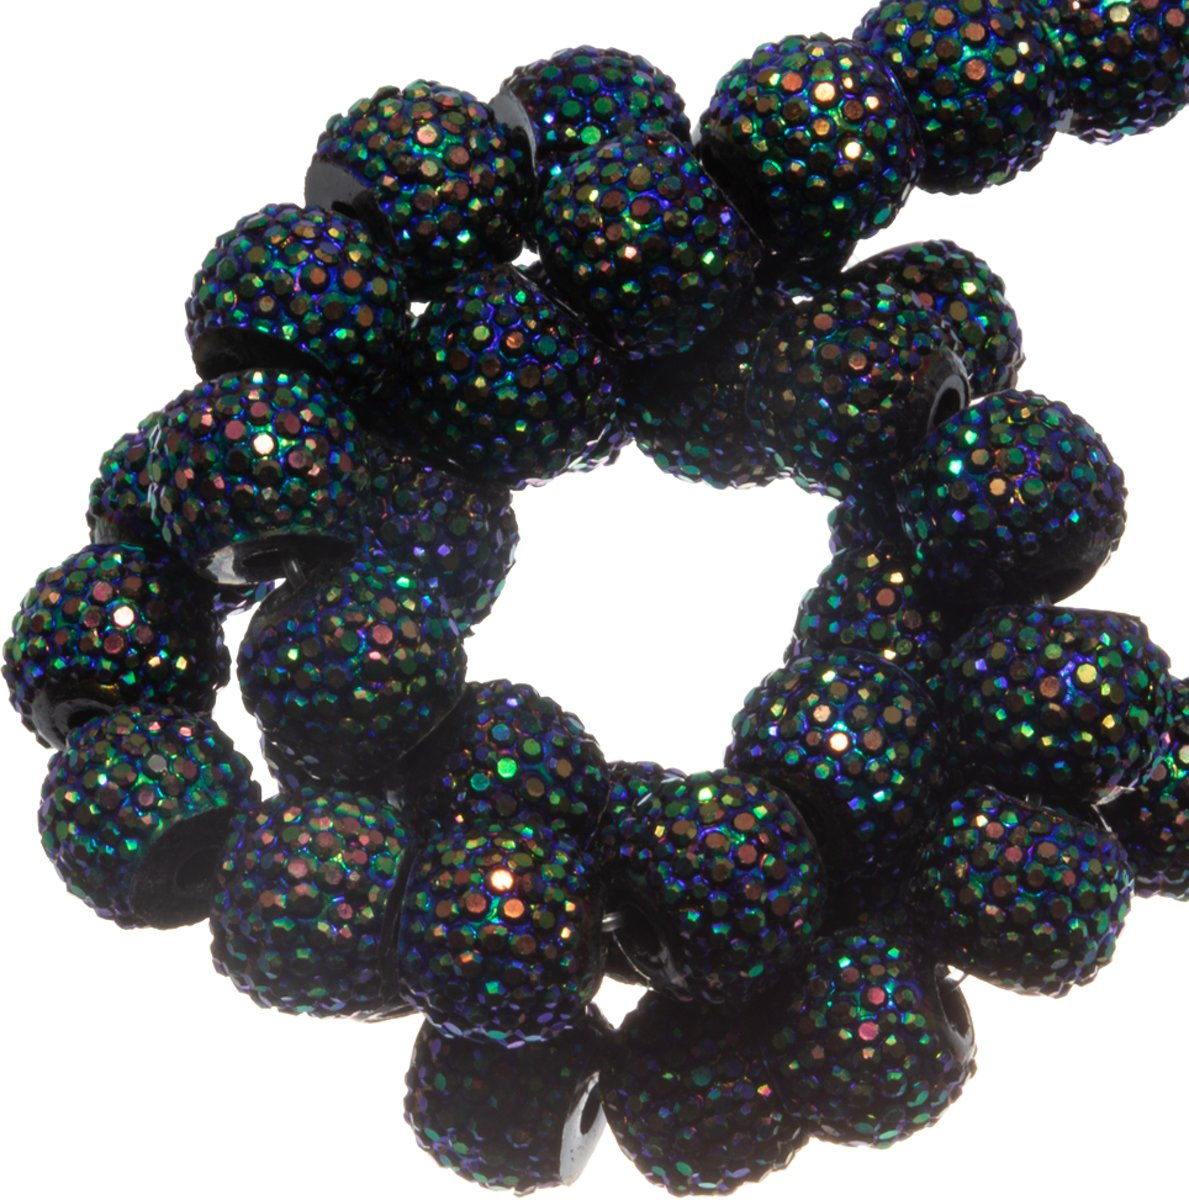 Acryl Kralen Rhinestone (8 mm) Shine Mix Black (25 Stuks)